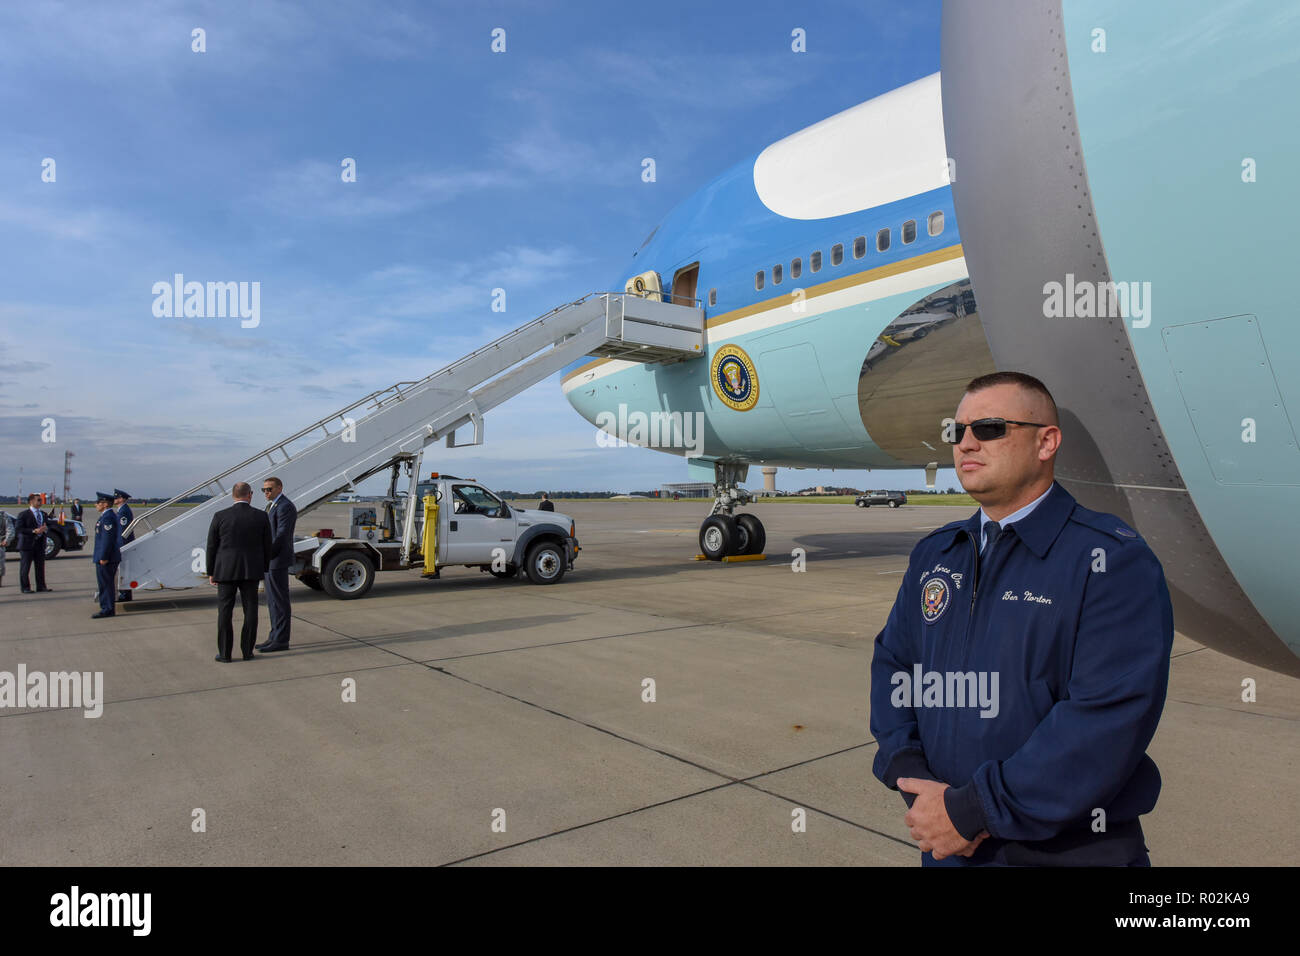 Master Sgt. Ben Norton, of the 89th Presidential Airlift Group stationed at Joint Base Andrews, stands guard in front of Air Force One at the 171st Air Refueling Wing near Pittsburgh, Oct. 30, 2018. President Donald Trump traveled to Pittsburgh after a deadly anti-semitic attack occurred on Oct. 27, 2018. (U.S. Air National Guard photo by Staff Sgt. Bryan Hoover) Stock Photo